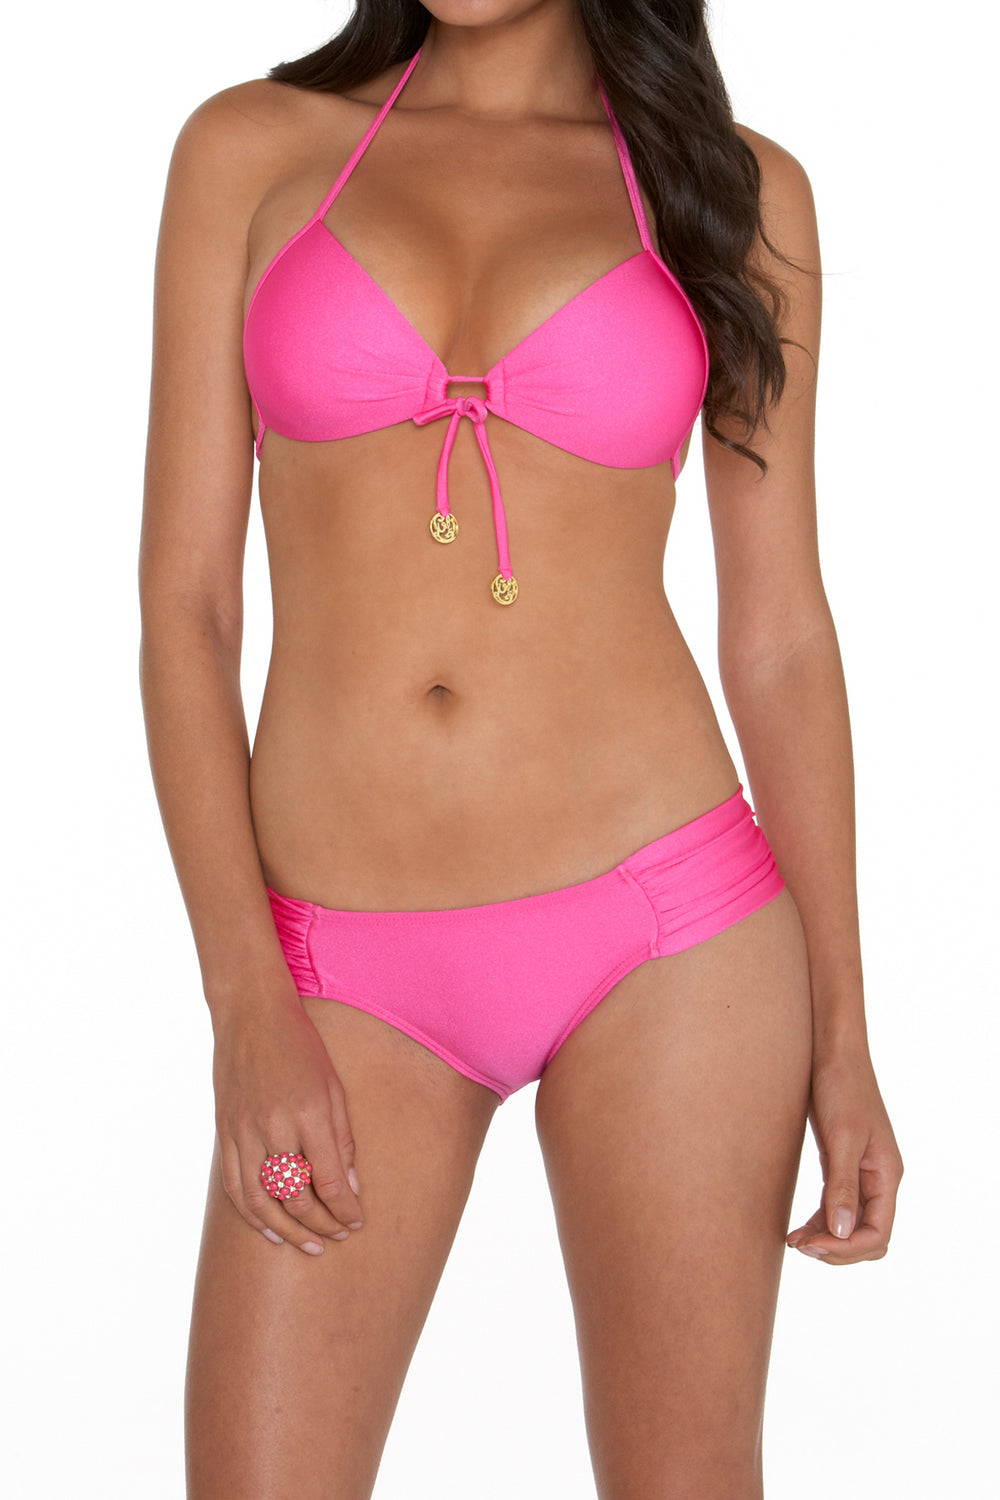 COSITA BUENA - Molded Push Up Bandeau Halter & Scrunch Side Full Bottom • Too Hot Miami